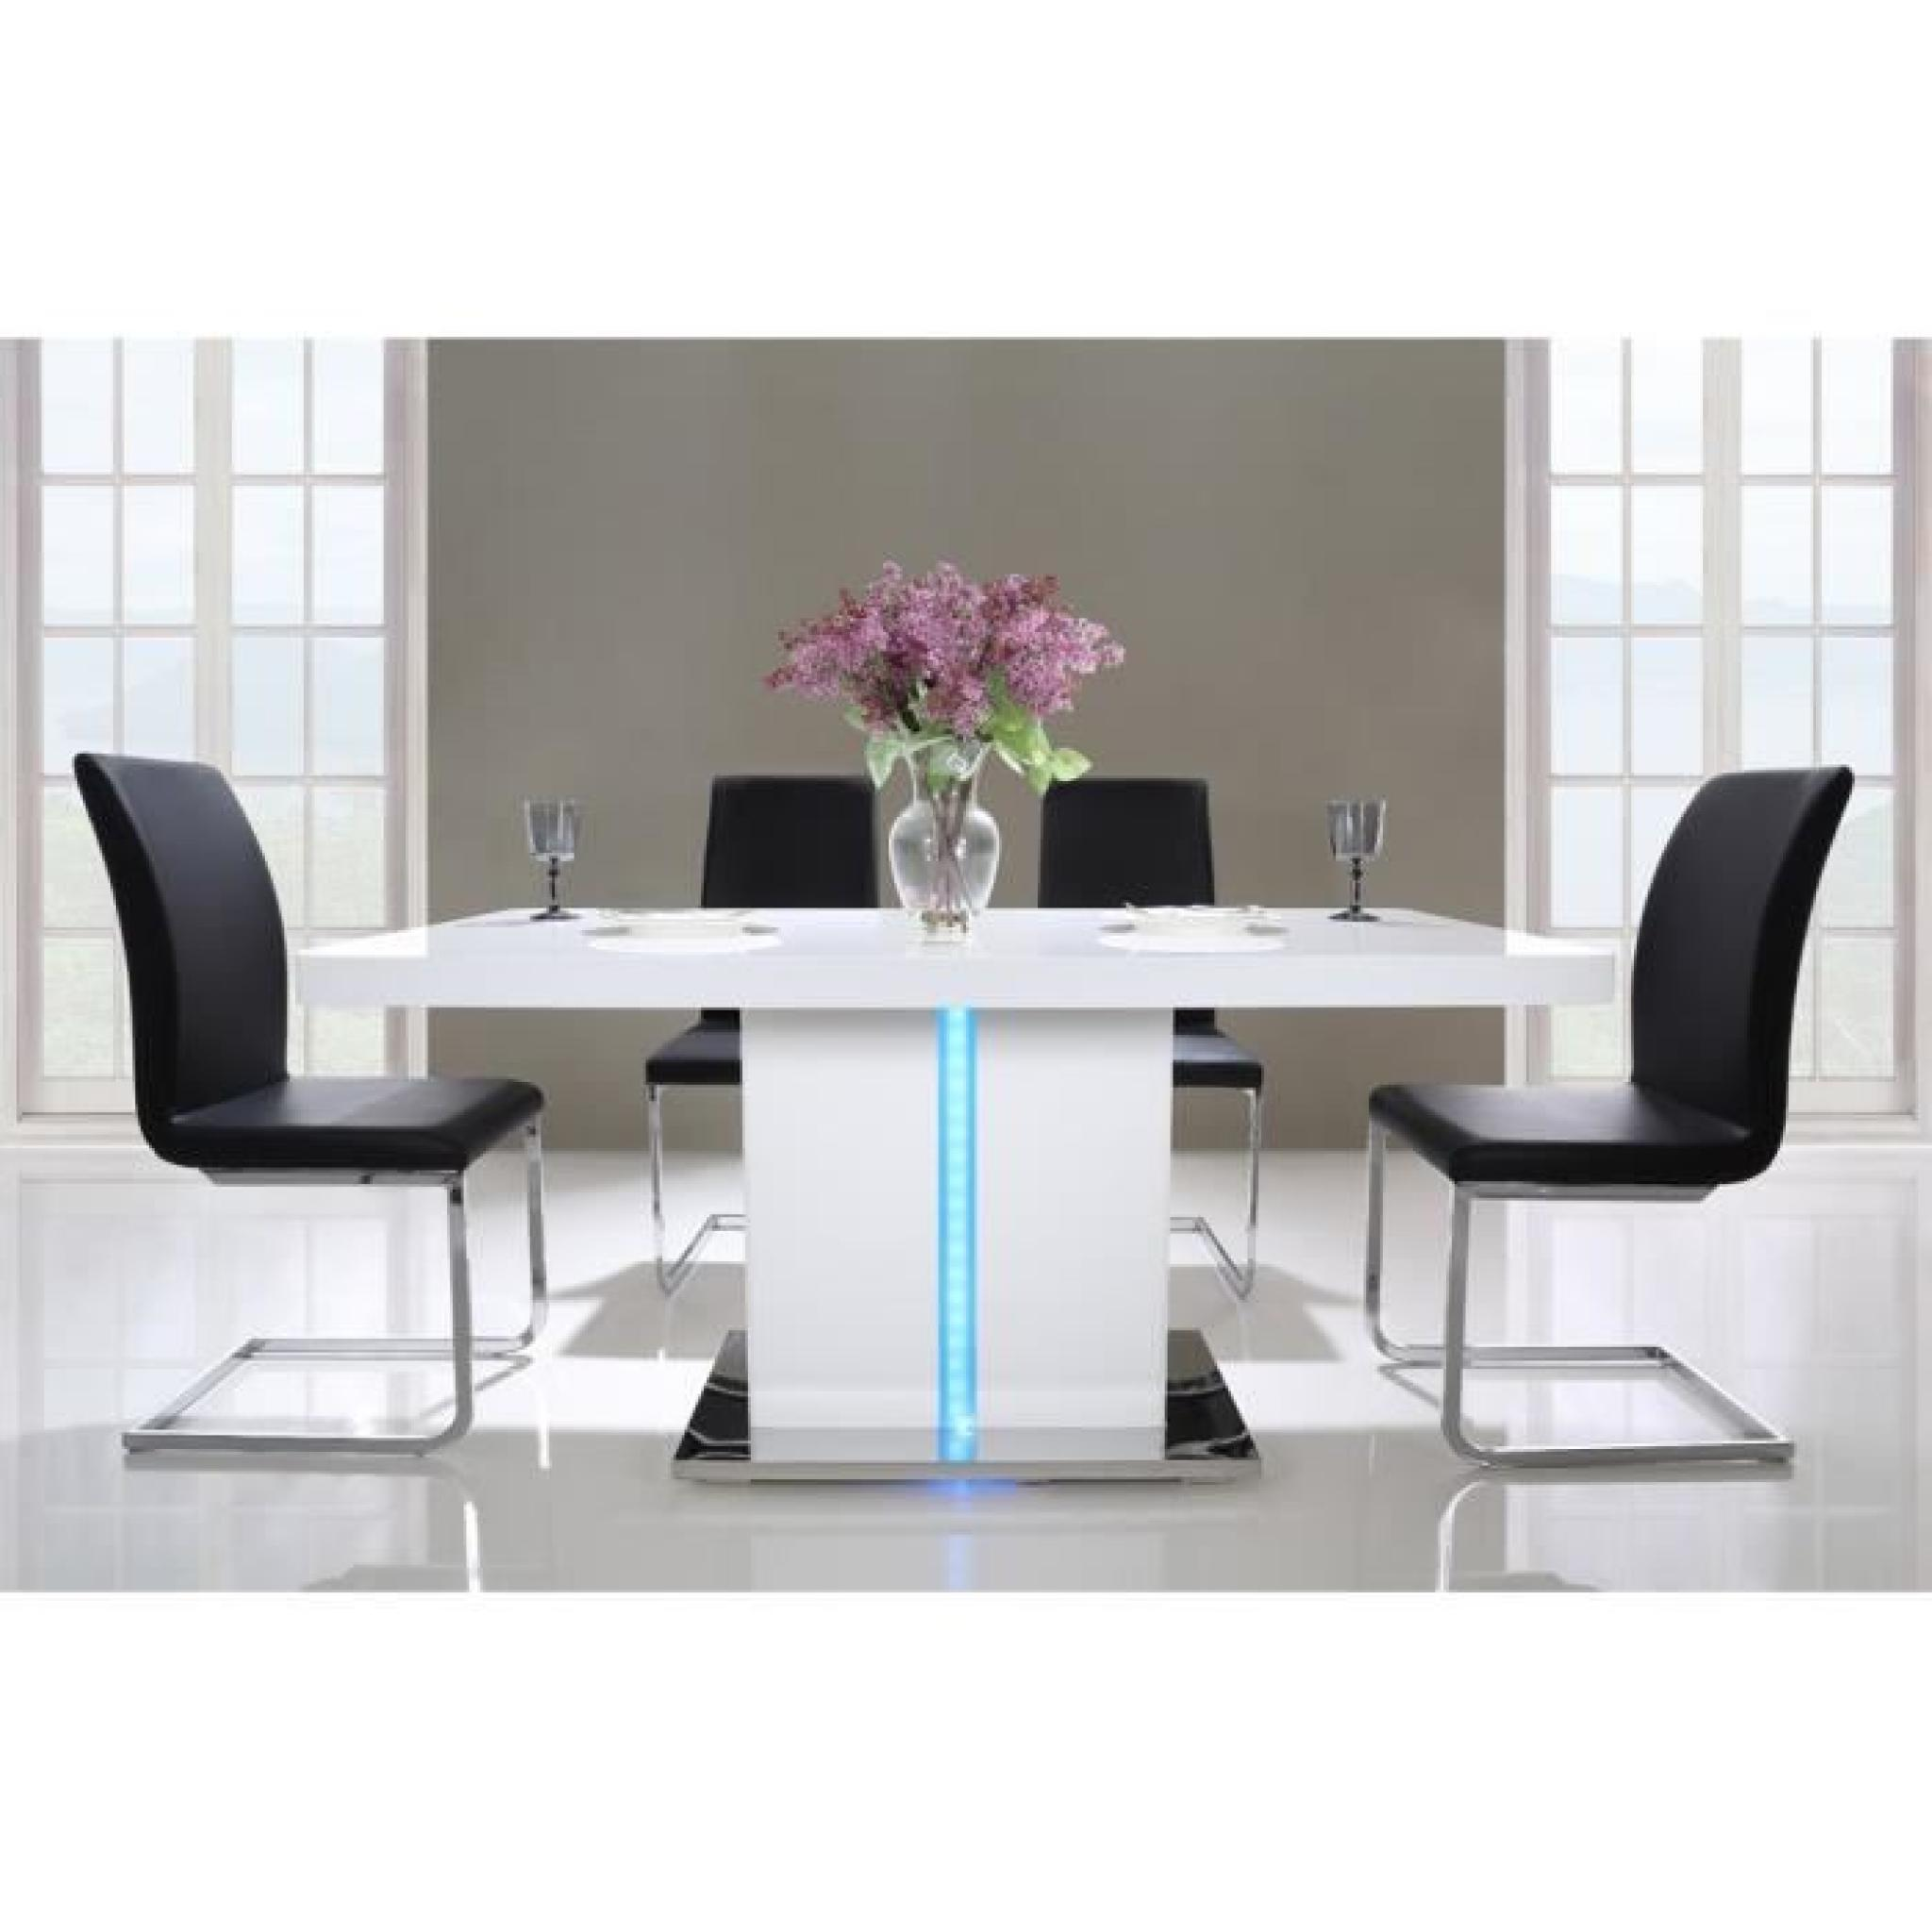 laser table manger 160cm laqu blanc brillant avec led. Black Bedroom Furniture Sets. Home Design Ideas